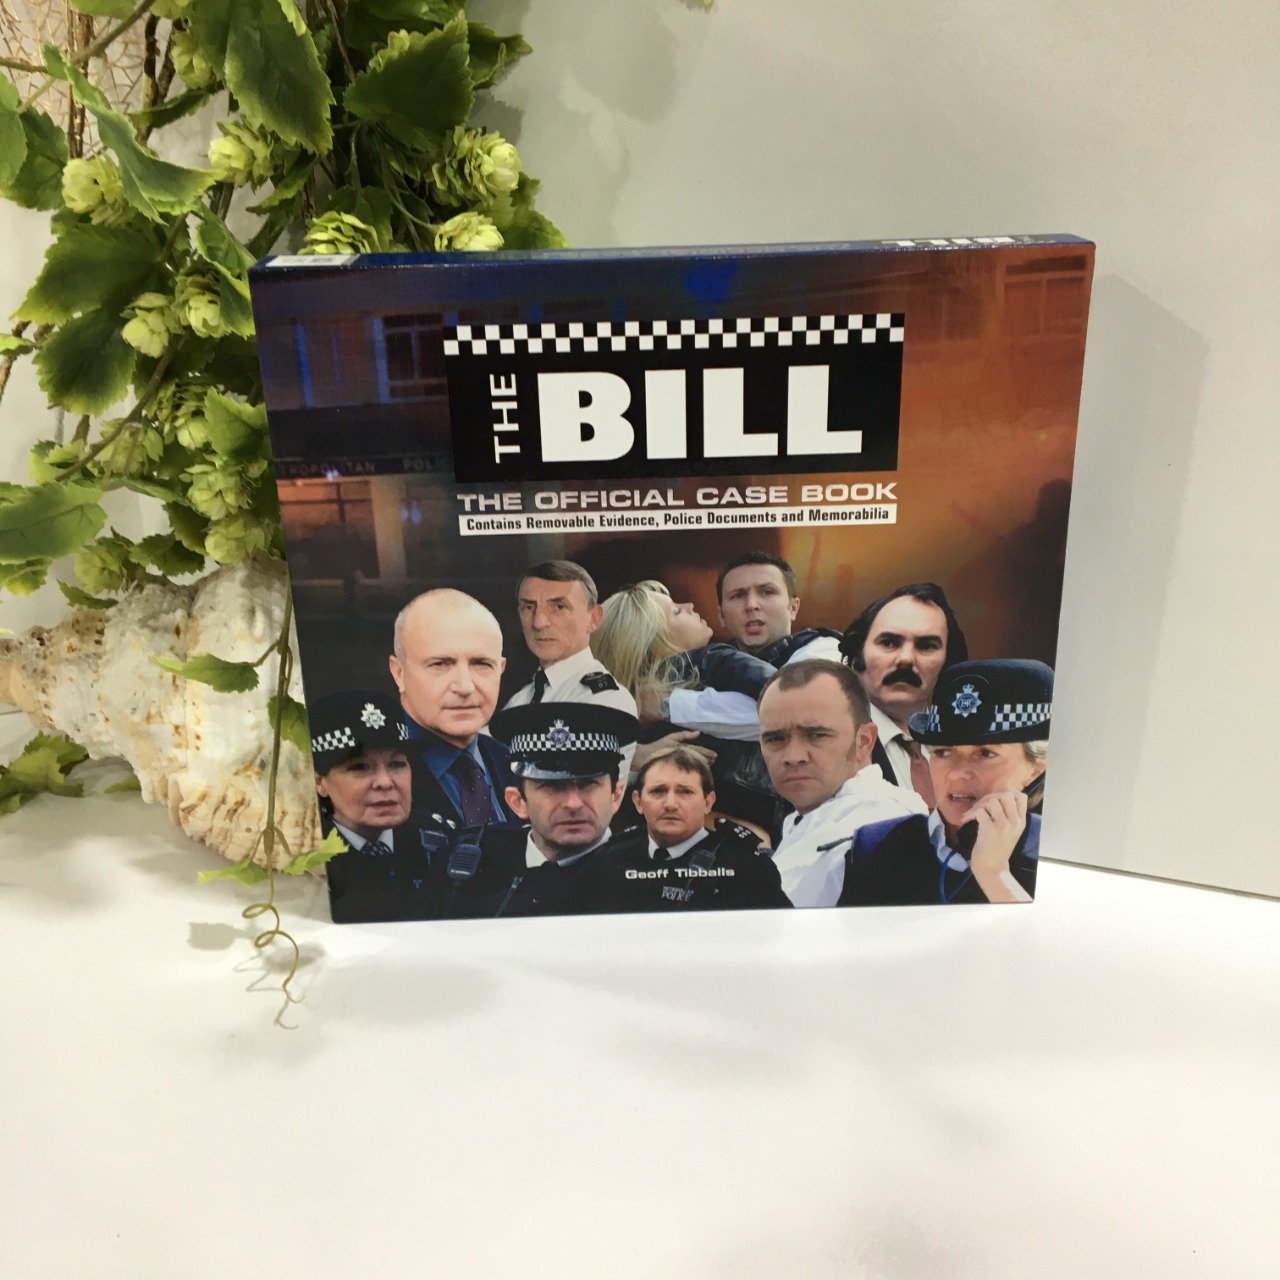 The Bill, The Official Case Book